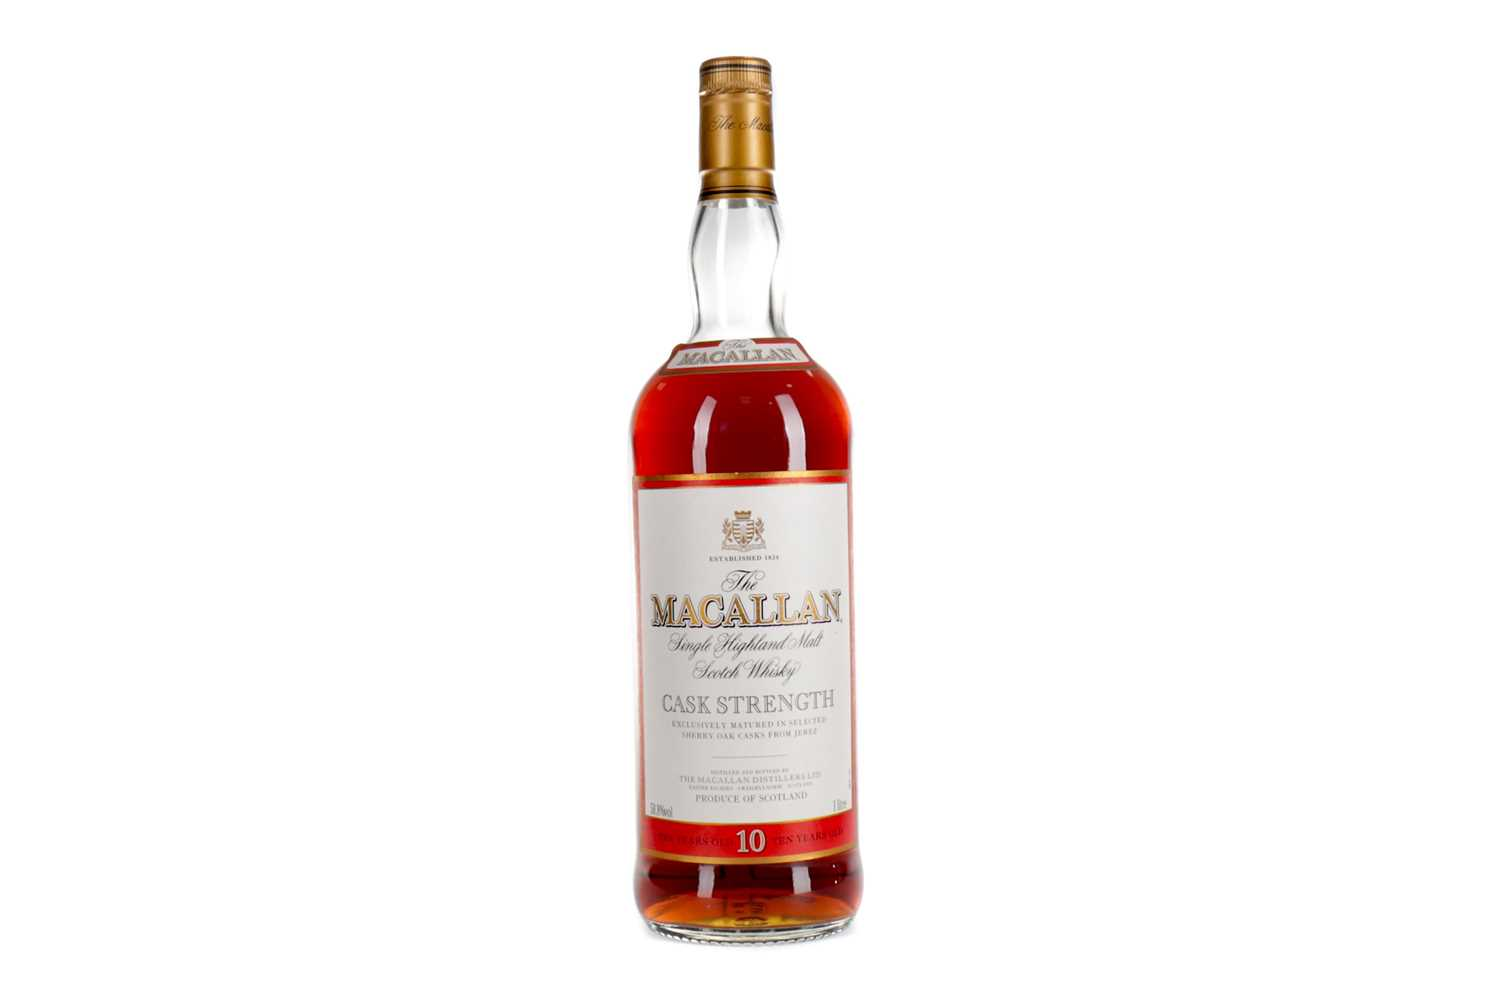 Lot 174 - MACALLAN CASK STRENGTH 10 YEARS OLD - ONE LITRE